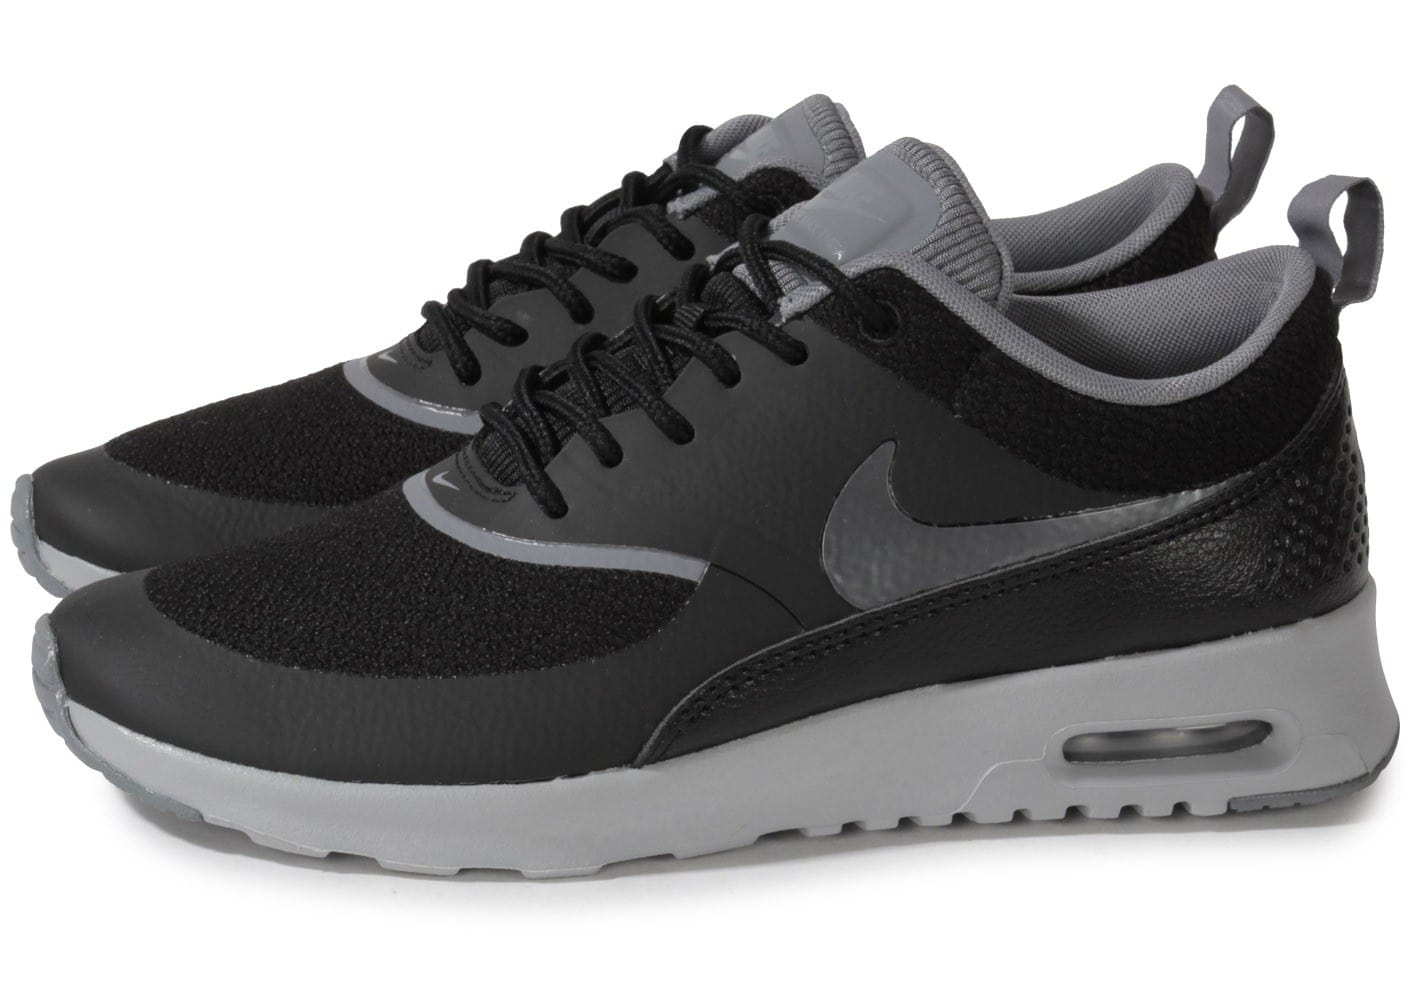 nike air max thea noire chaussures chaussures chausport. Black Bedroom Furniture Sets. Home Design Ideas